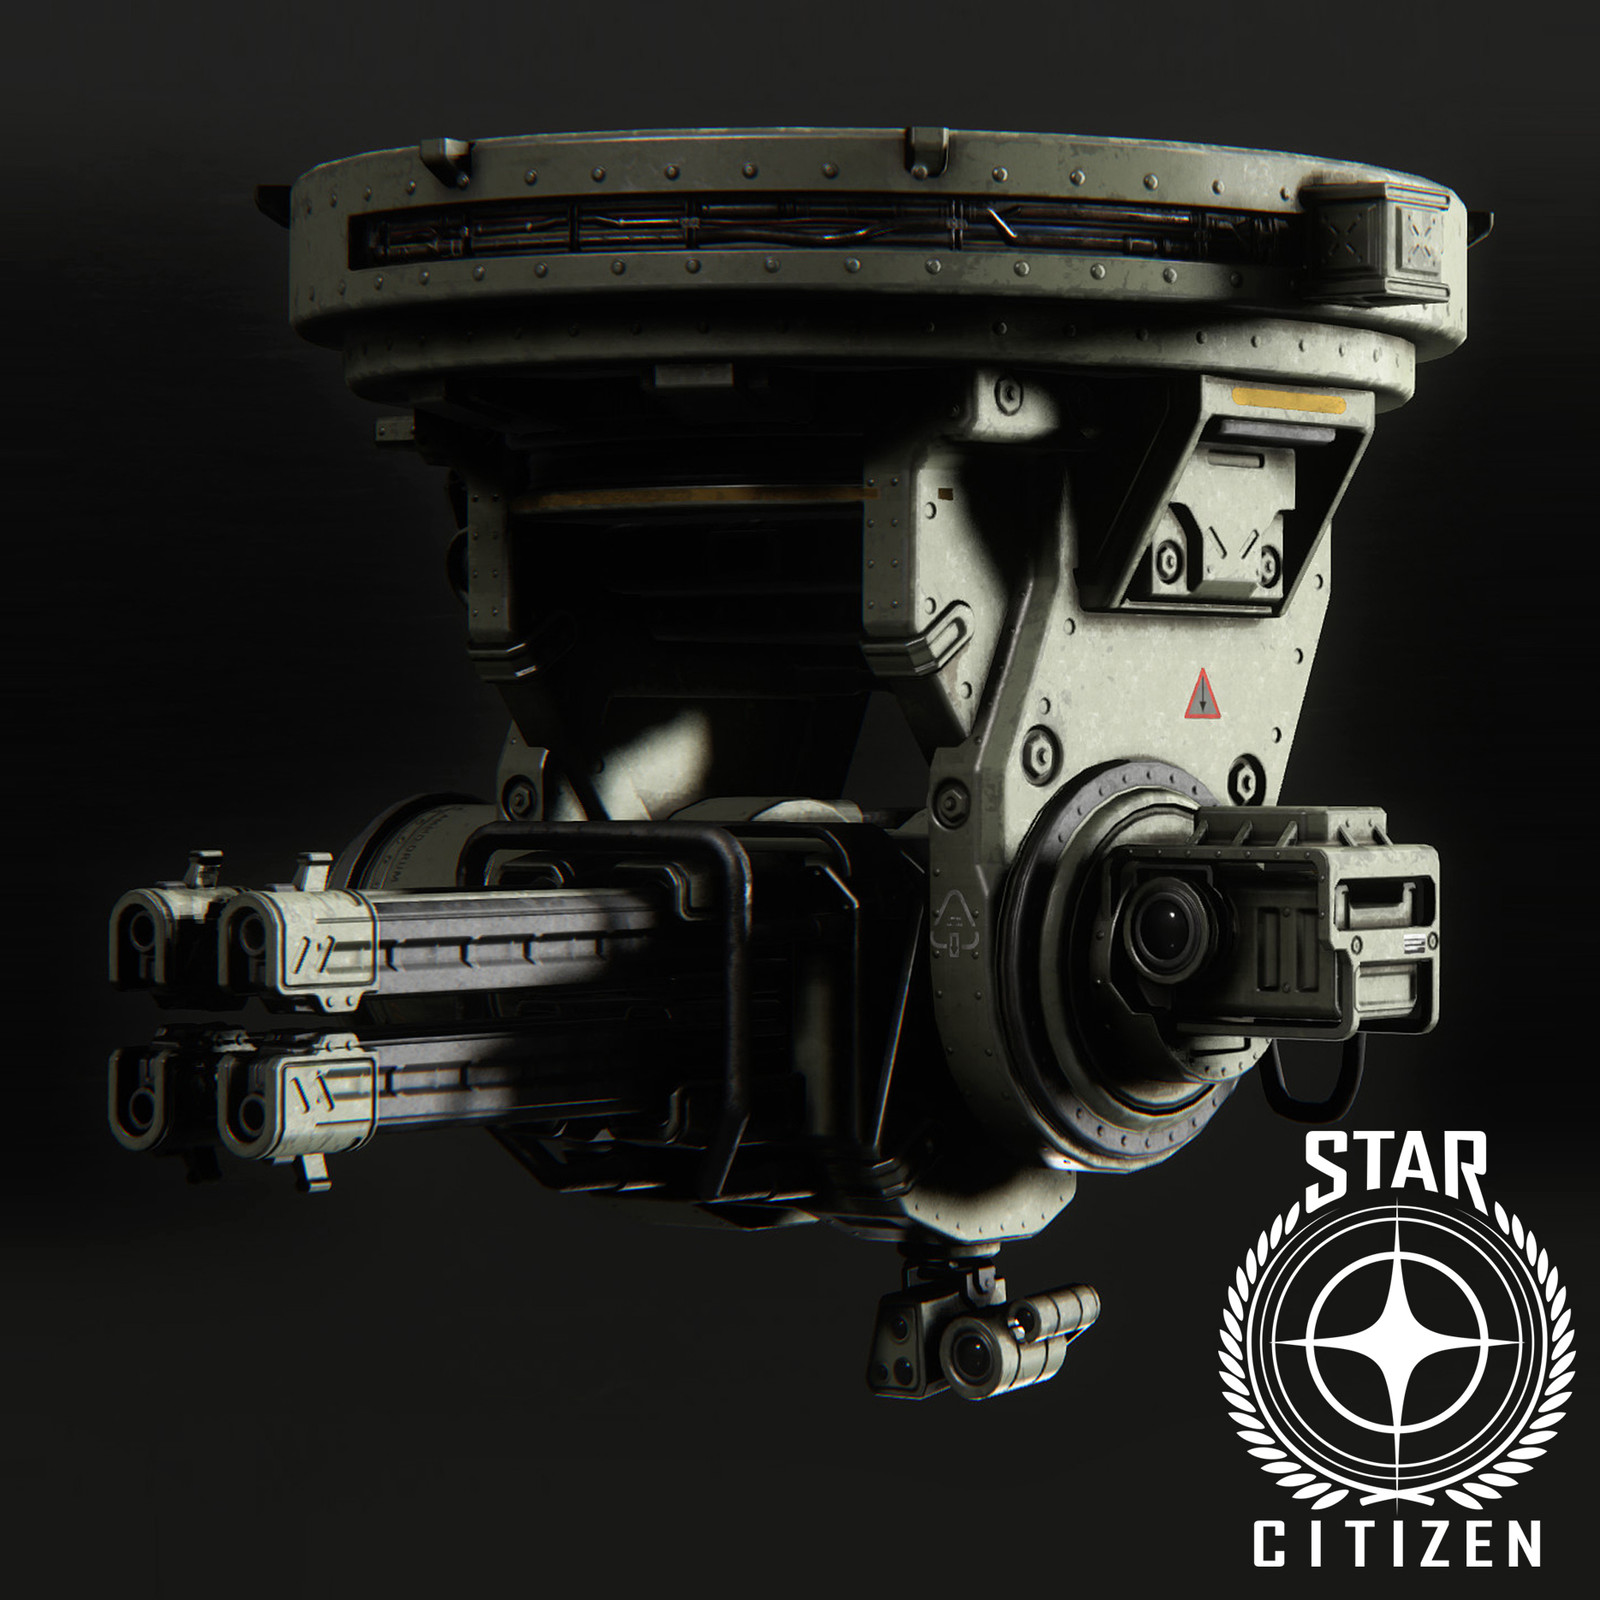 Star Citizen Security Turret